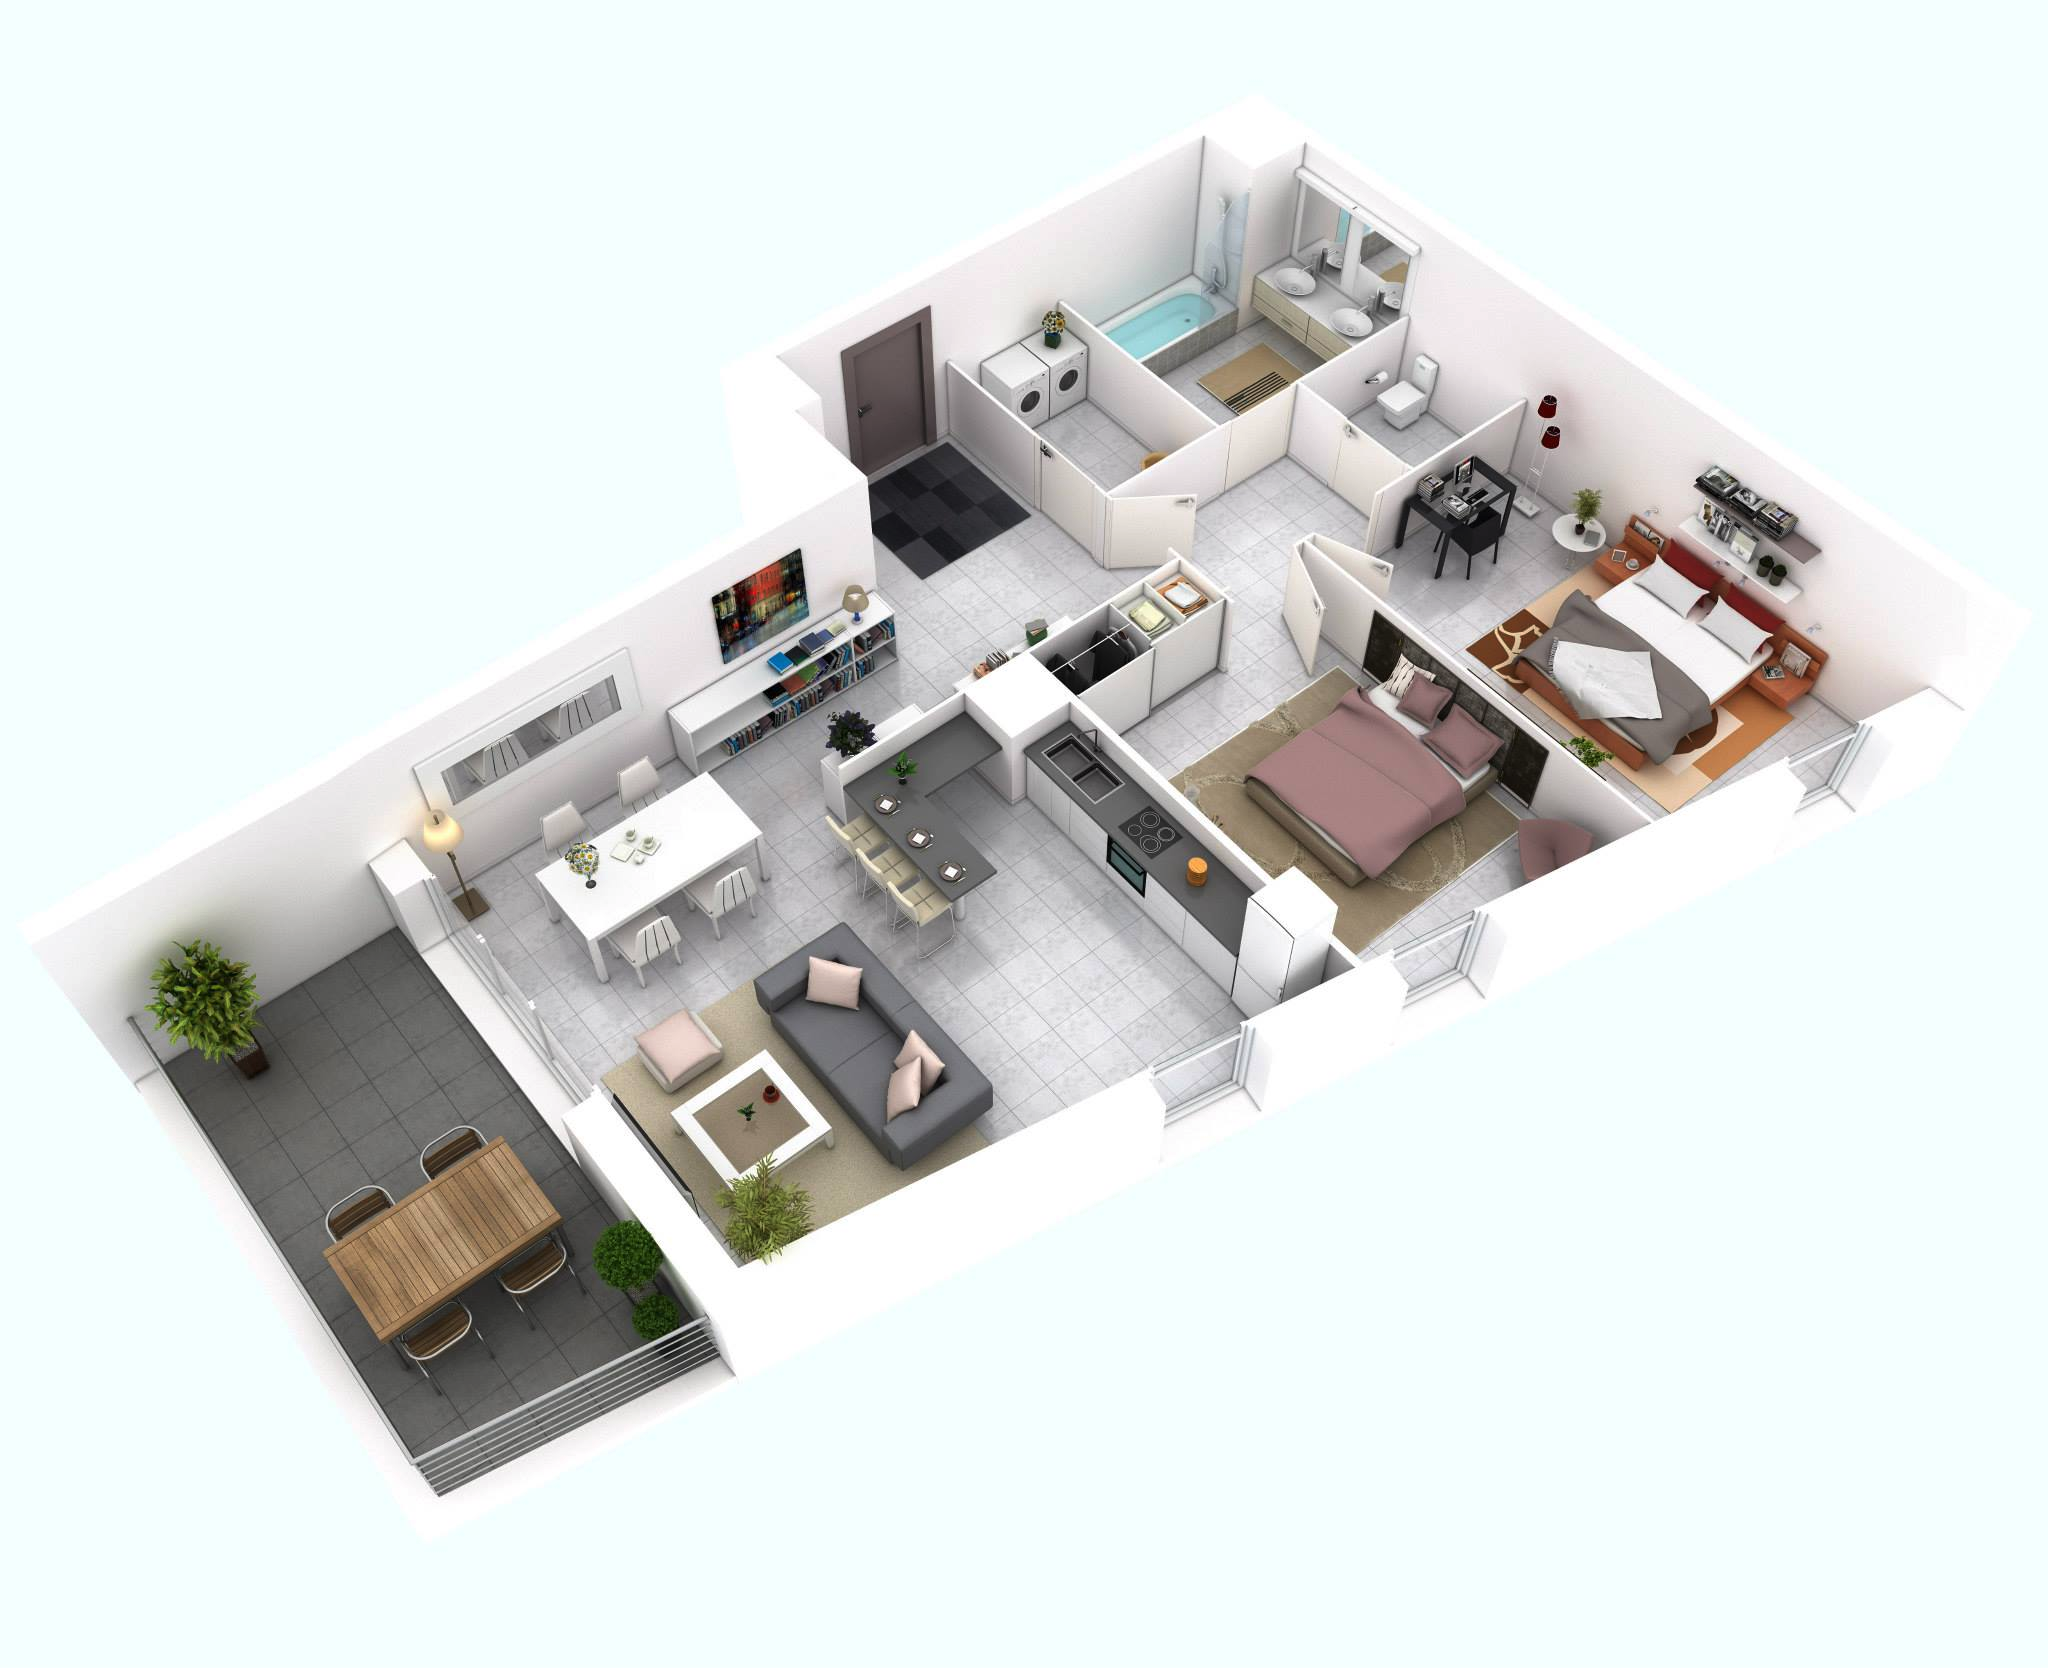 25 More 2 Bedroom 3D Floor Plans - ^